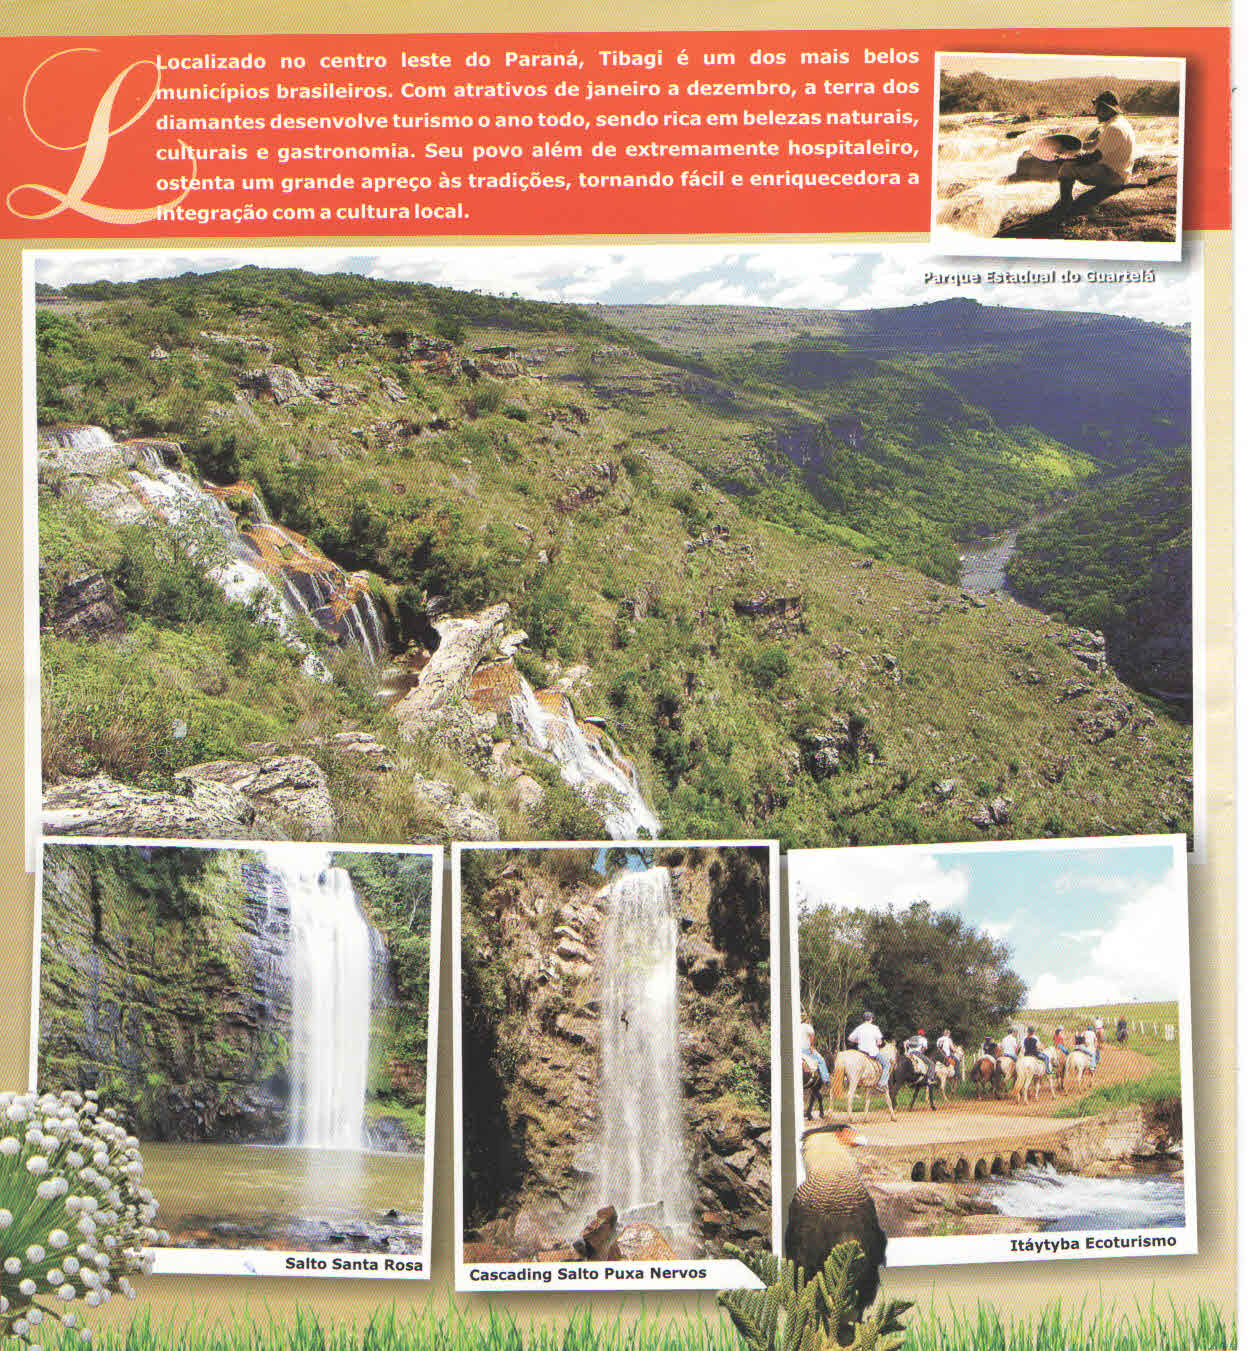 Official folder of the city of Tibagi showing the State Park of Guartelá and its attractions.